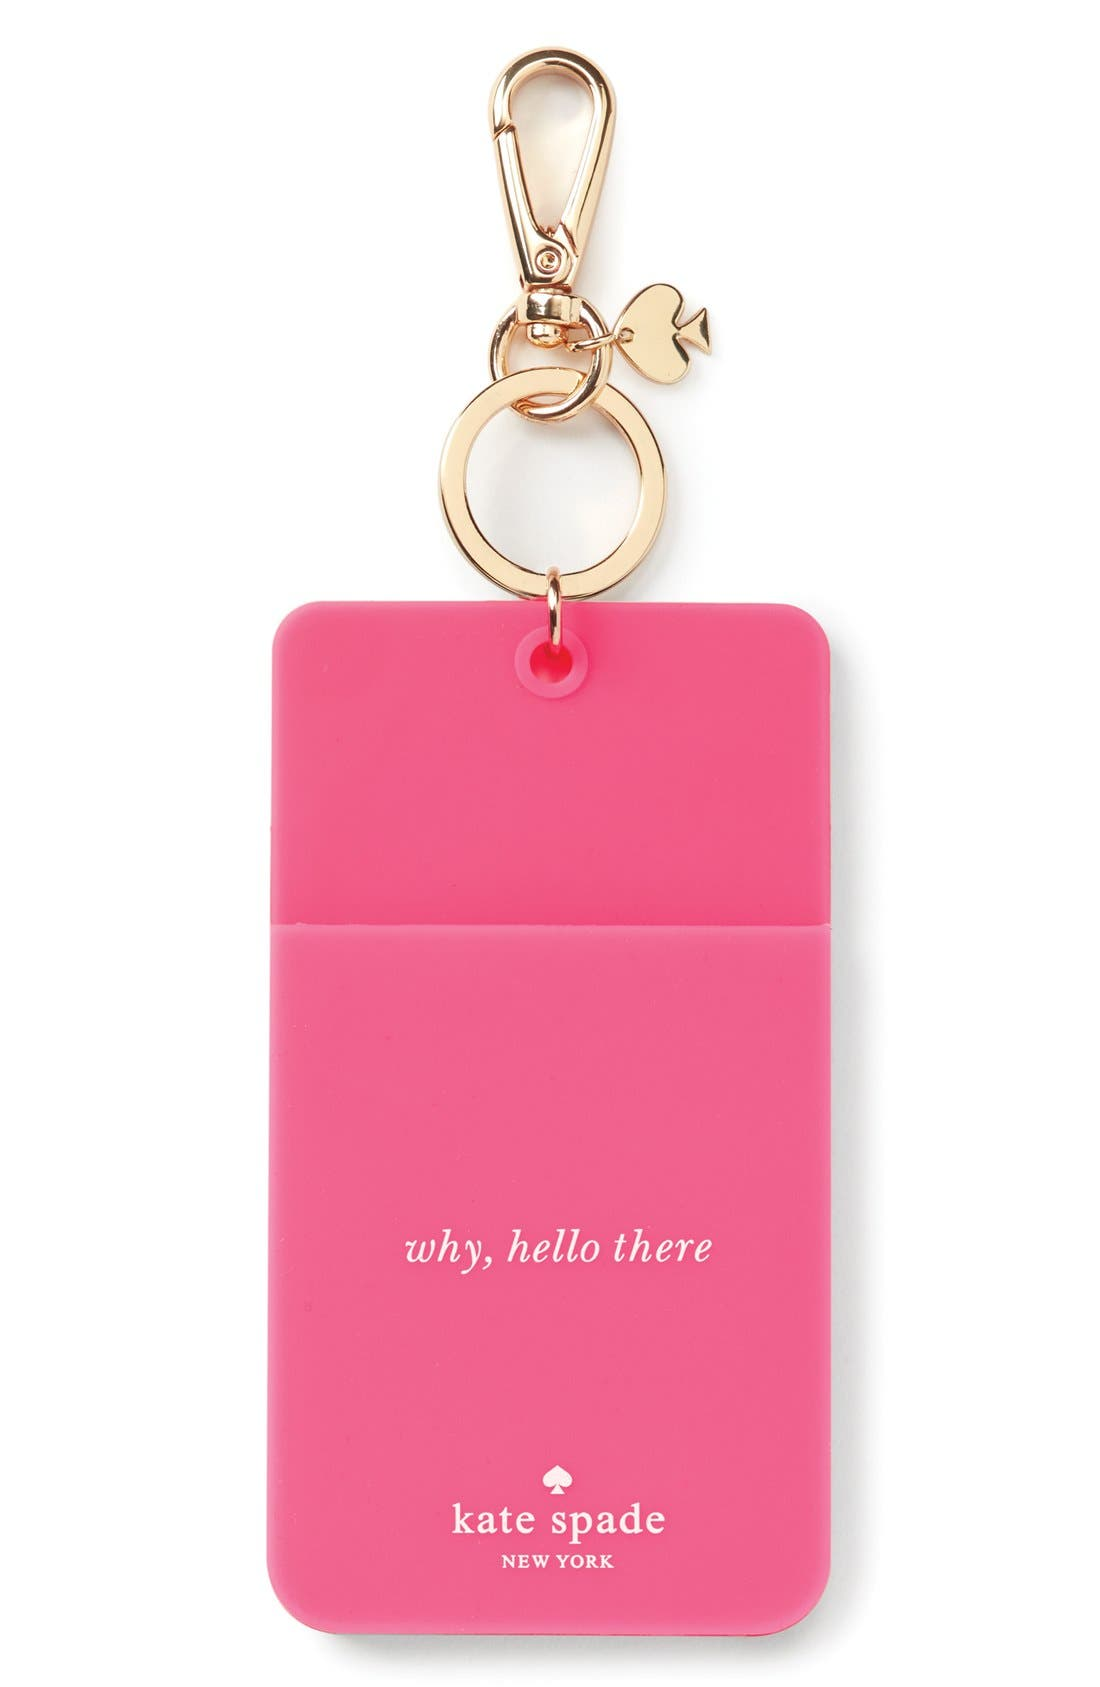 KATE SPADE NEW YORK 'why hello there' ID